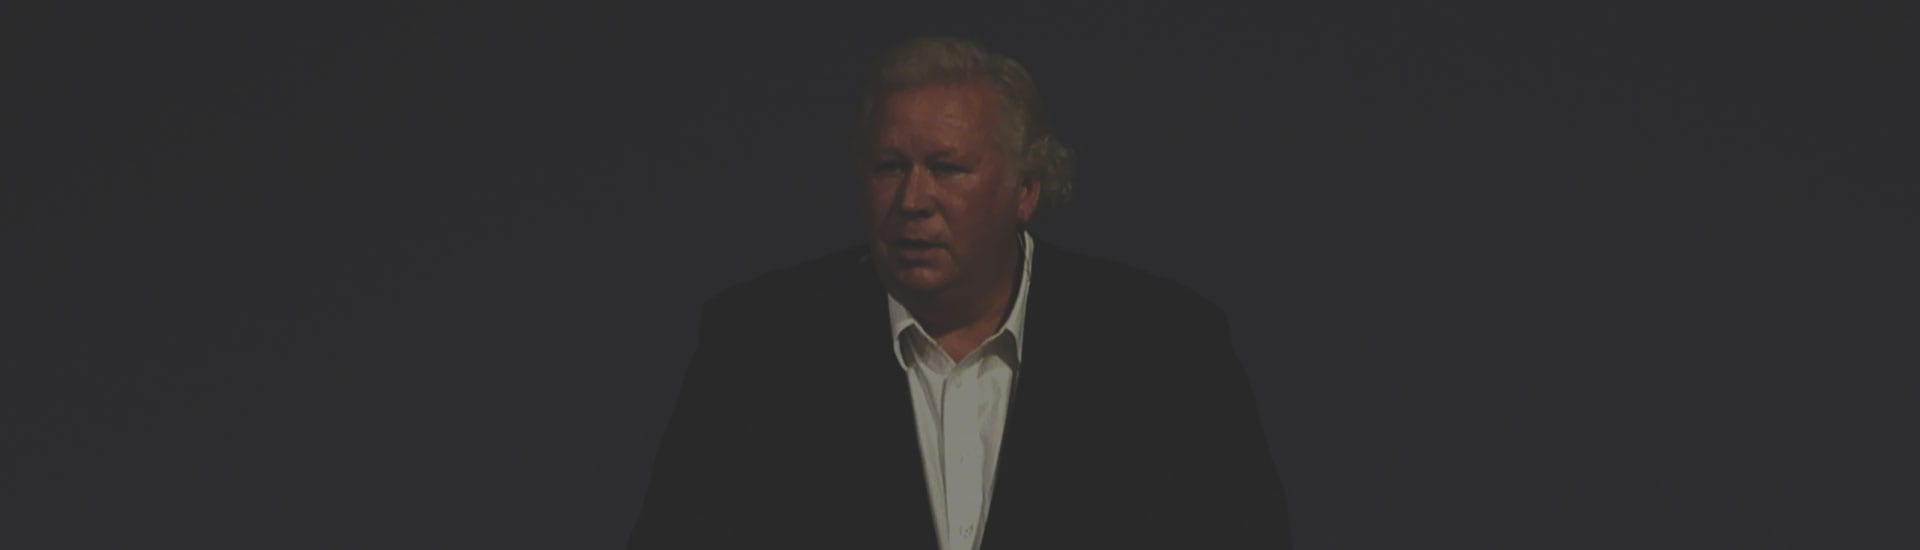 The Power of Student Leadership with Dr. Jay Strack